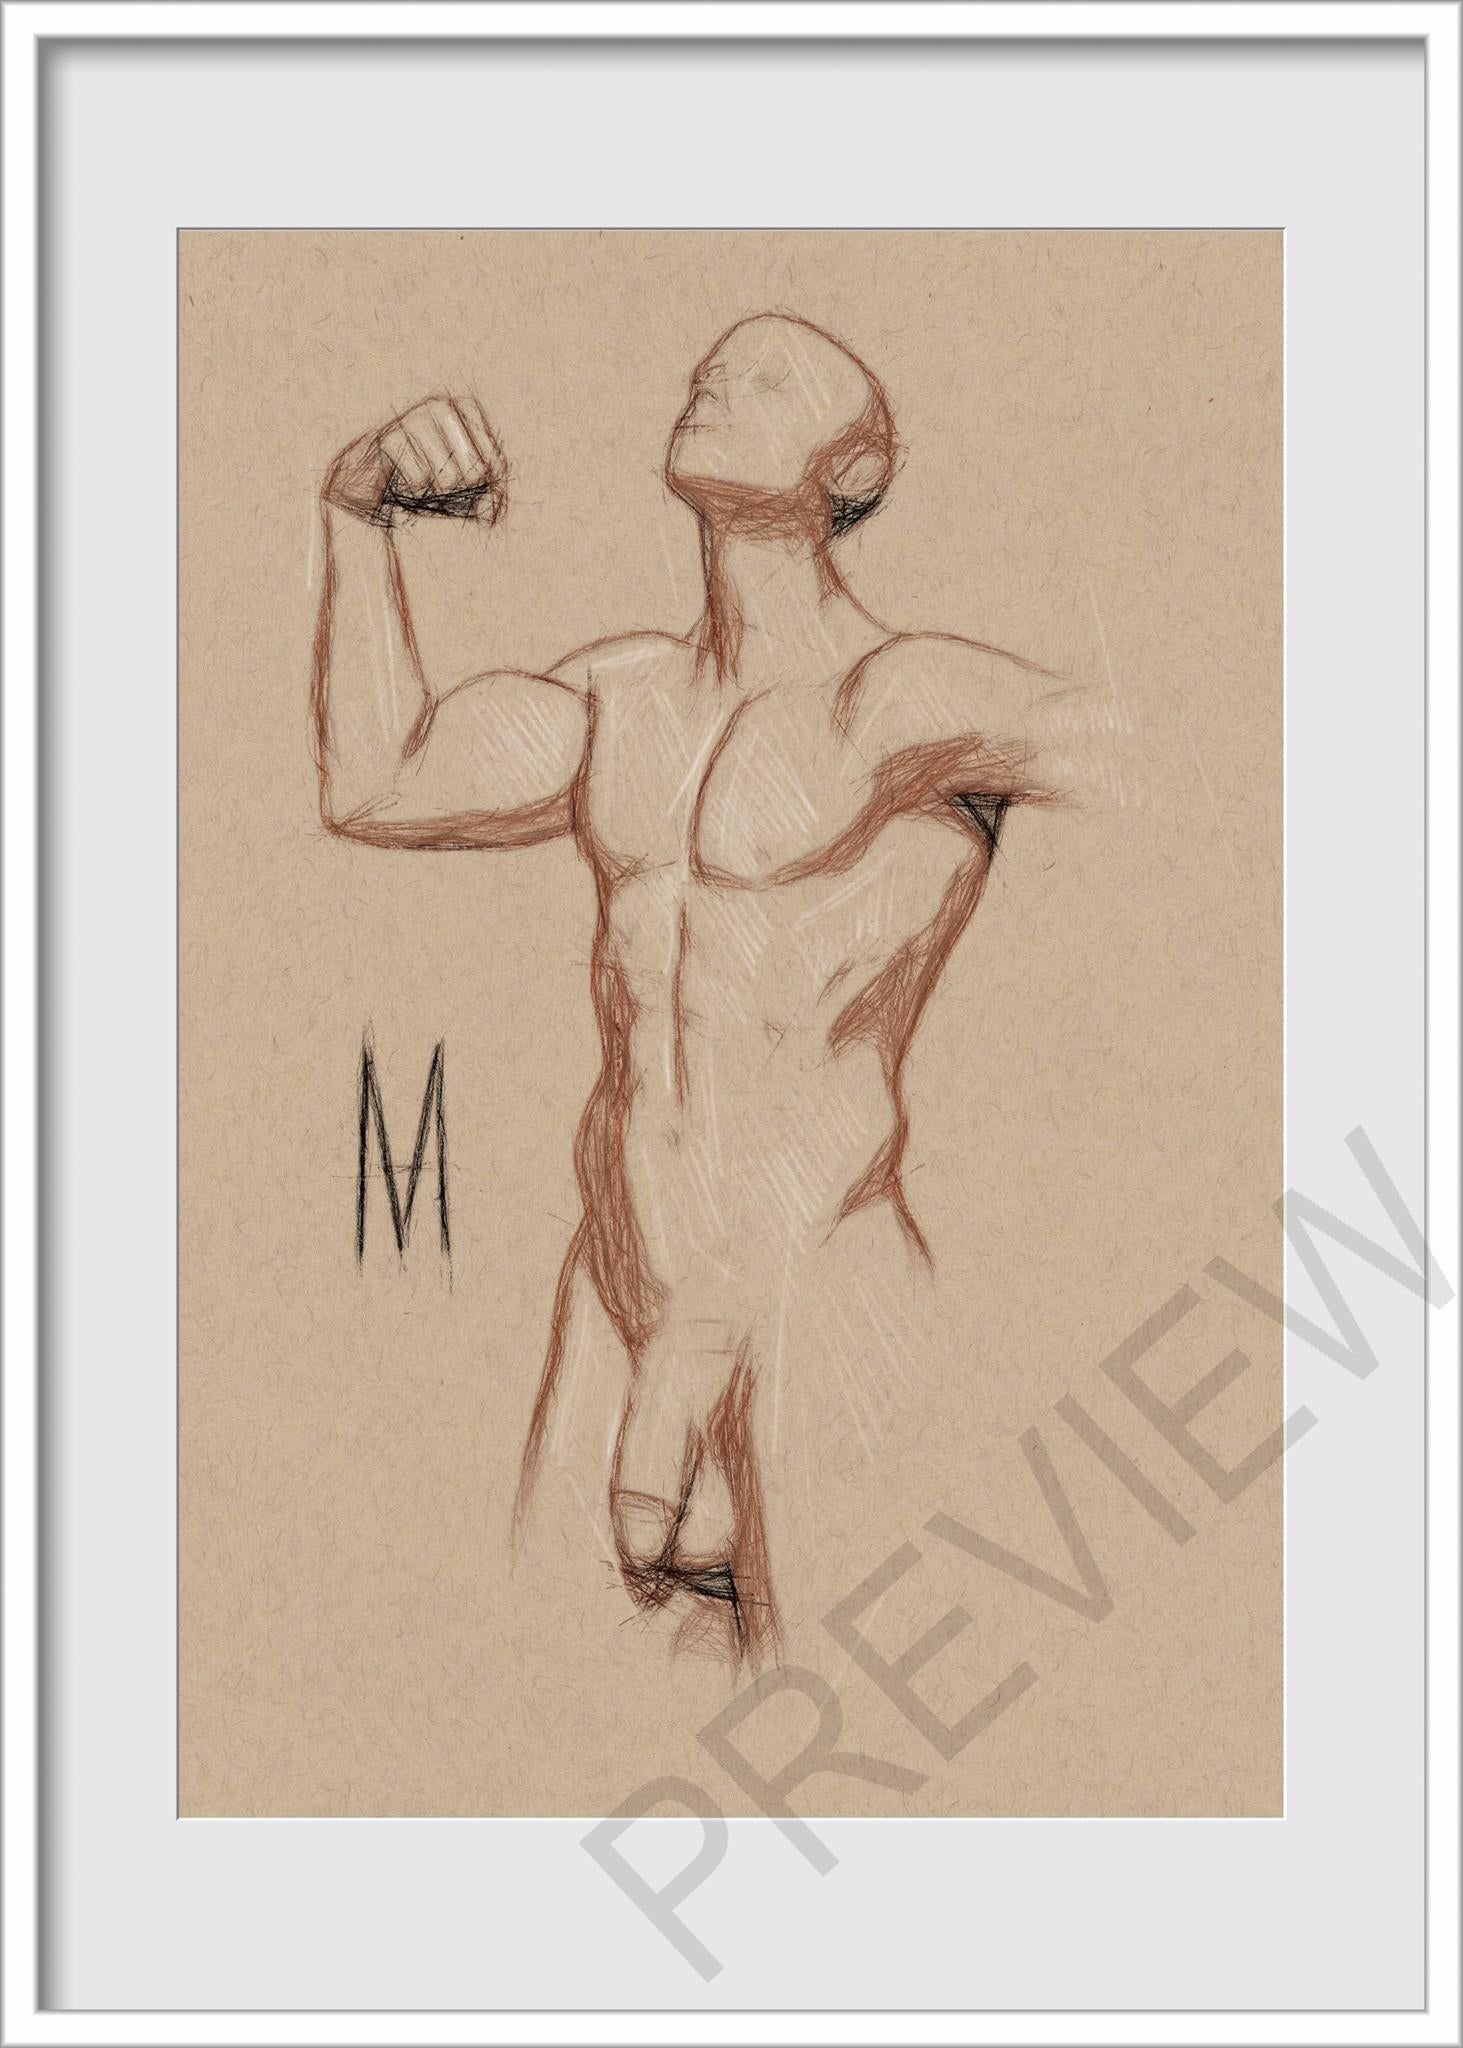 Original Nude Male Pose Figure Drawing On 5x7 Toned Tan Vellum Paper